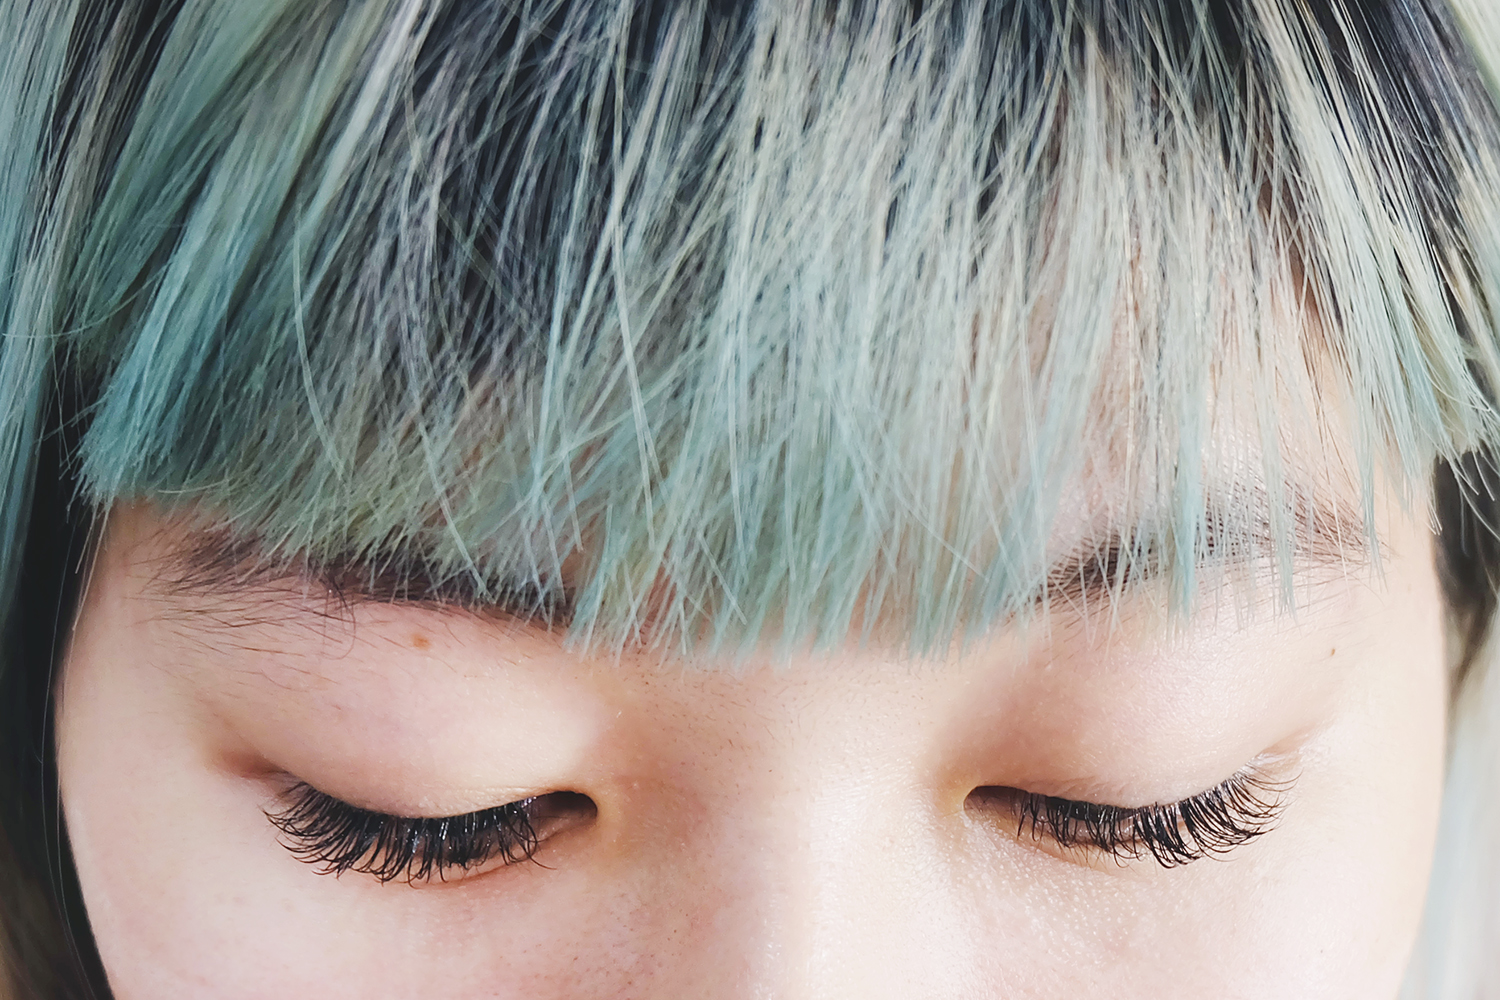 Review Eyelashes Extension at Brie Studio | www.bigdreamerblog.com